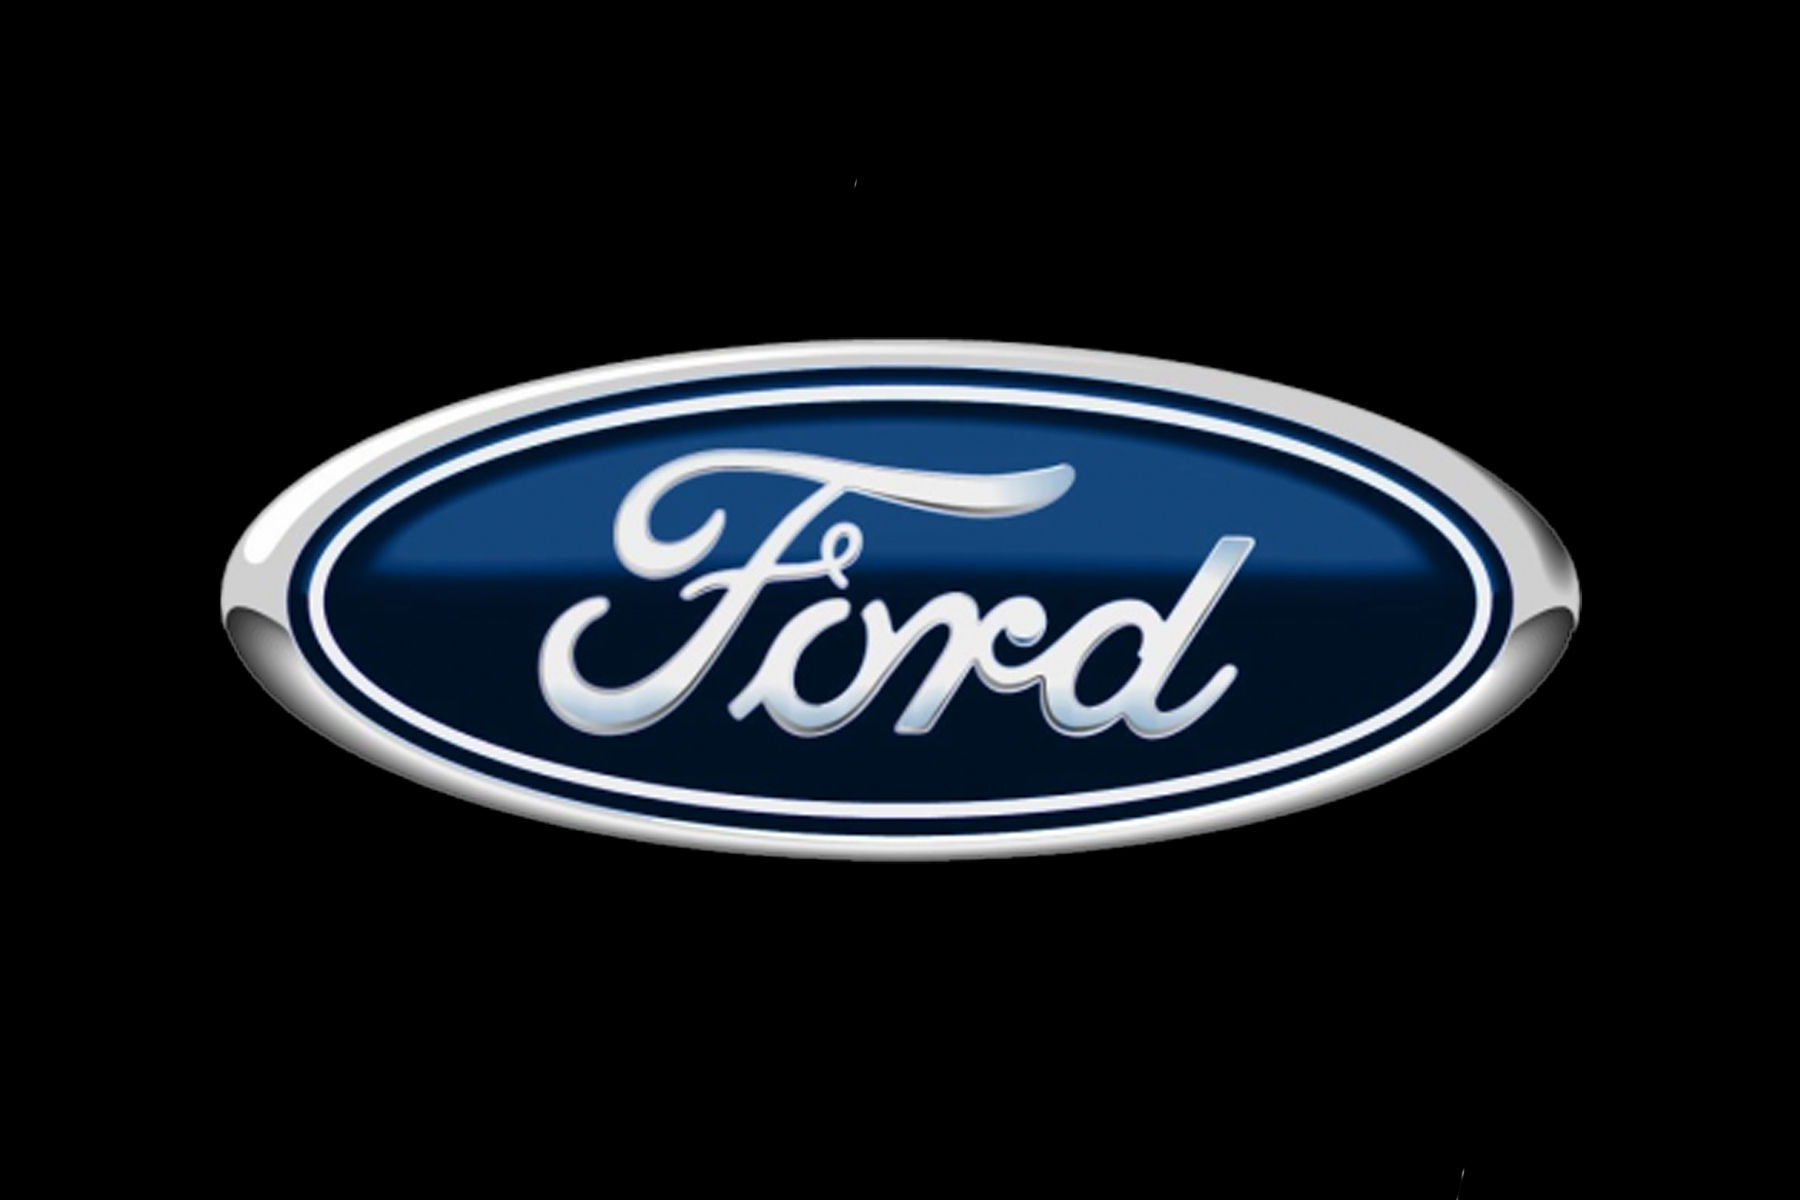 | Ford